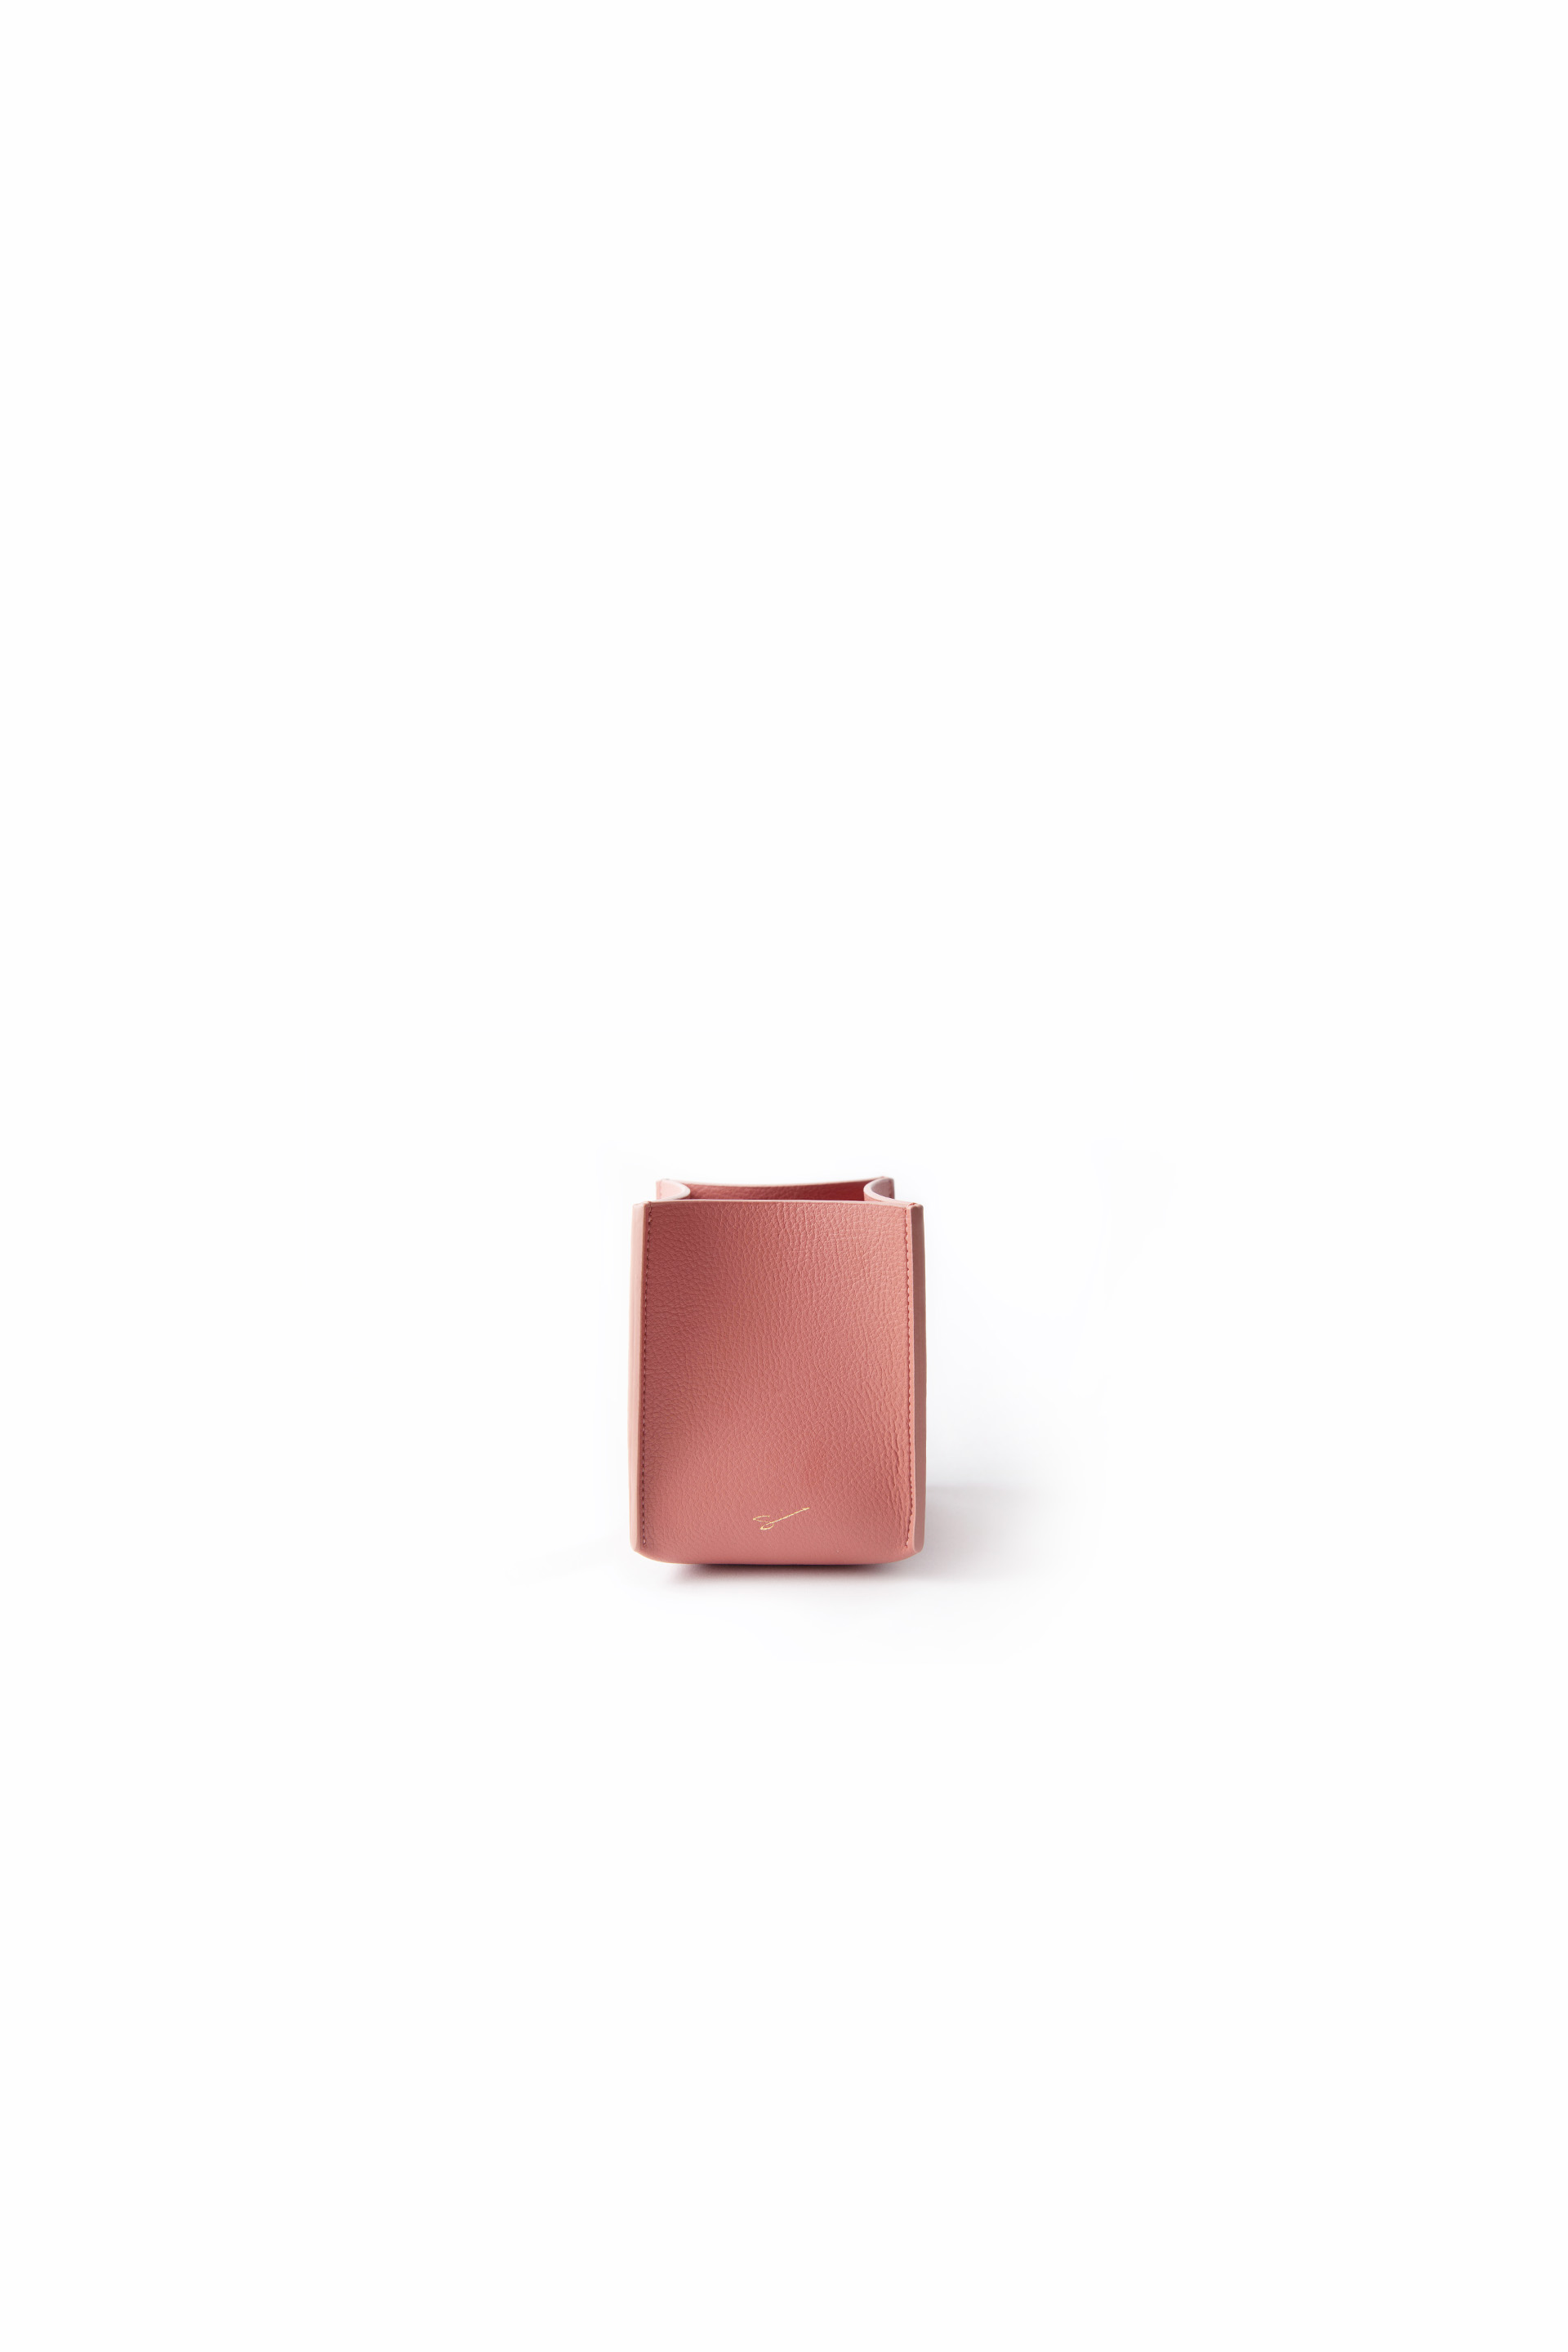 PENCIL POT 44 Royal Pink